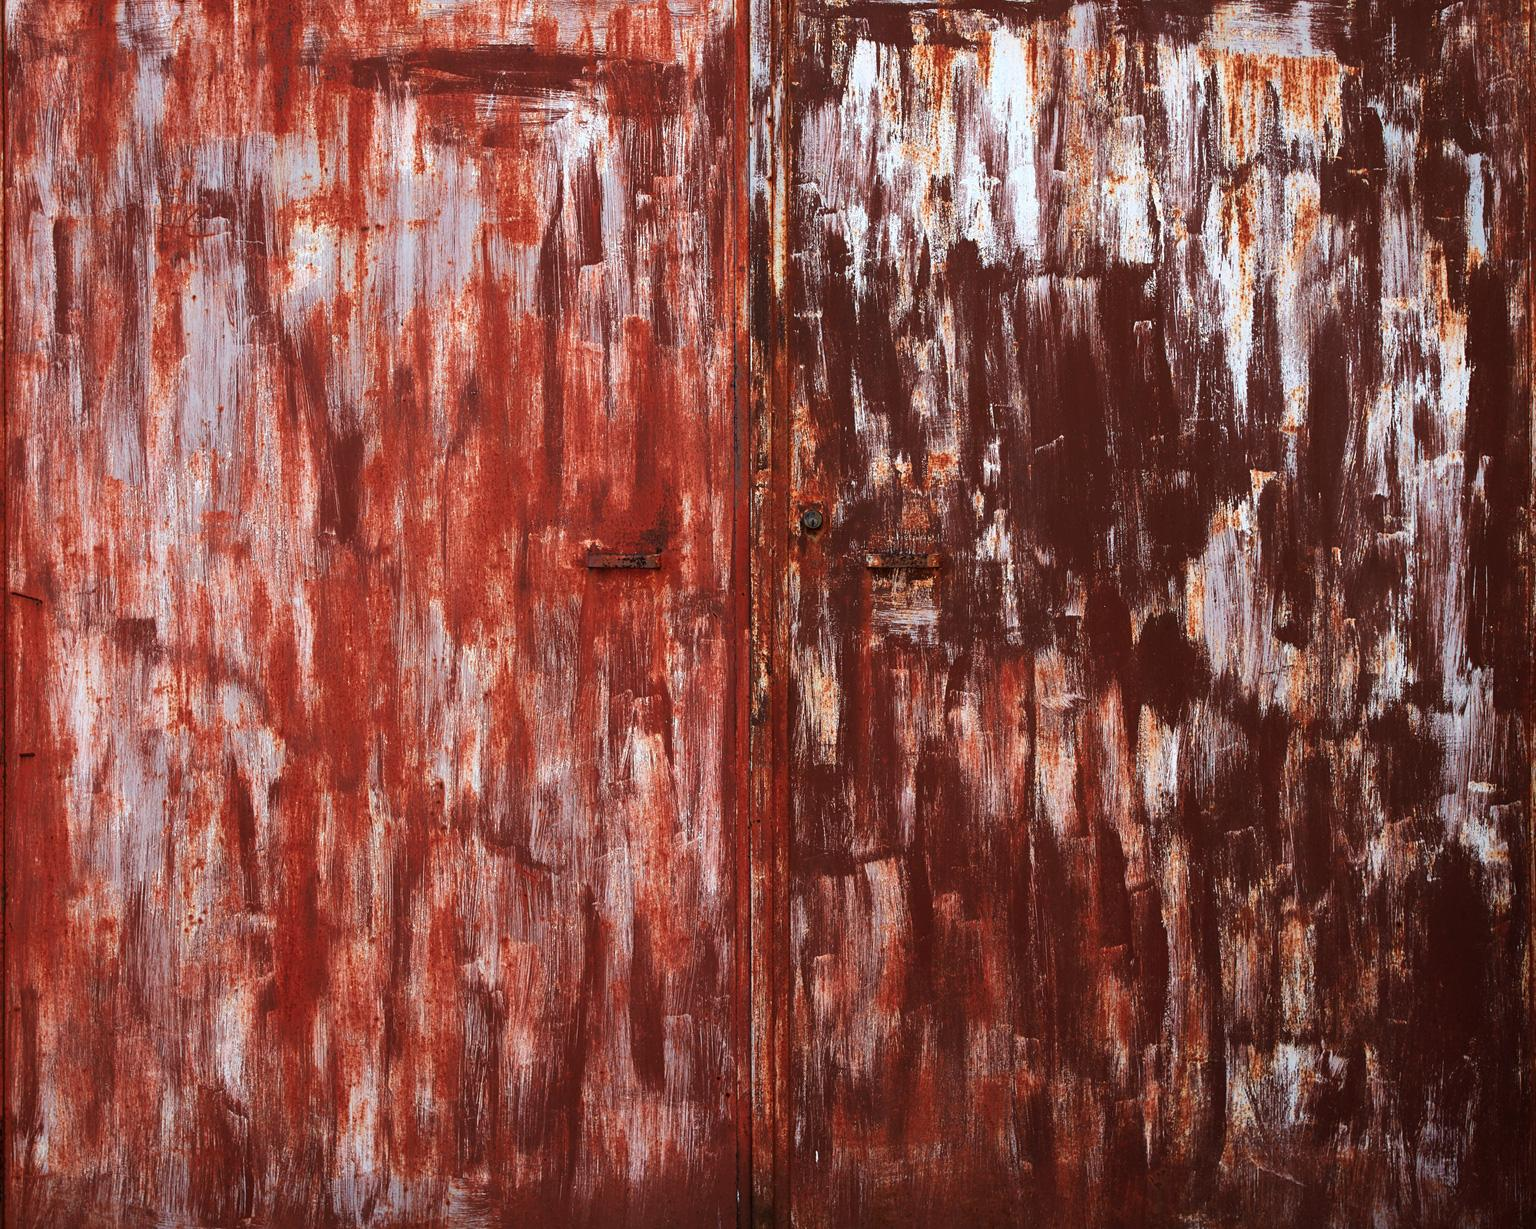 Wallscape II - abstract photograph of rust red toned wall textures